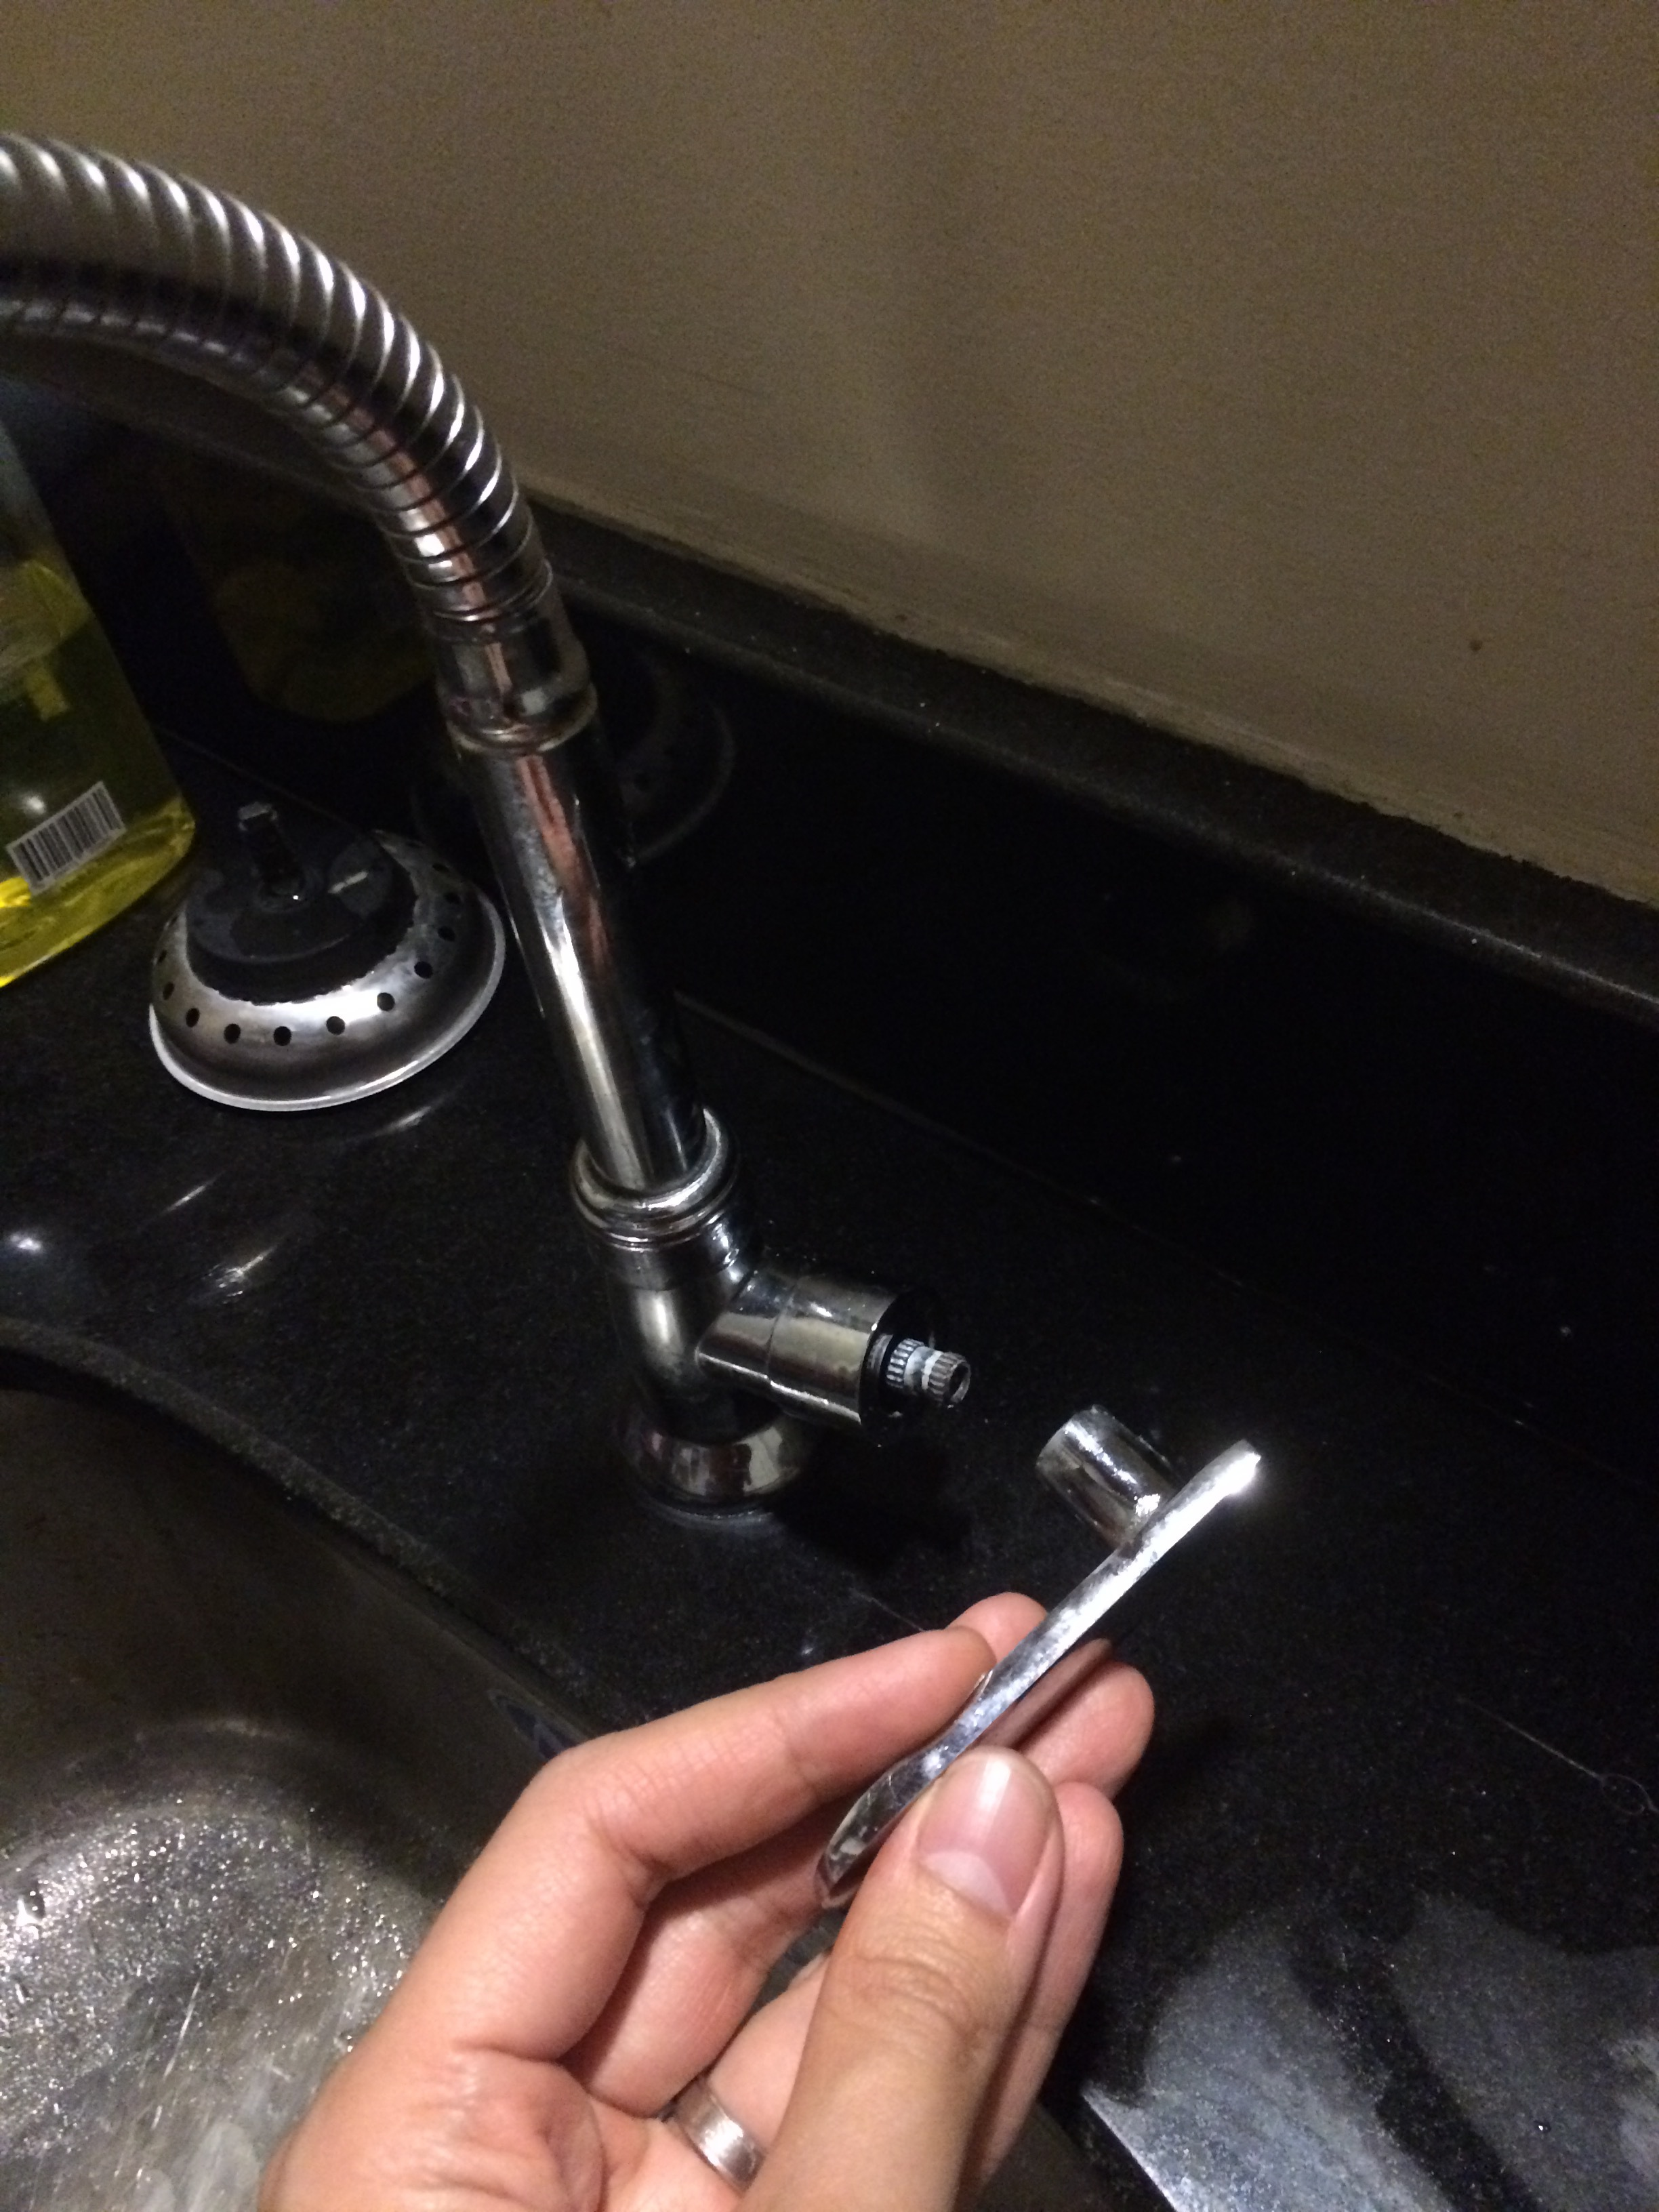 Our dirty kitchen's faucet handle broke off. Serves me right for getting a cheap one to save on a few bucks!